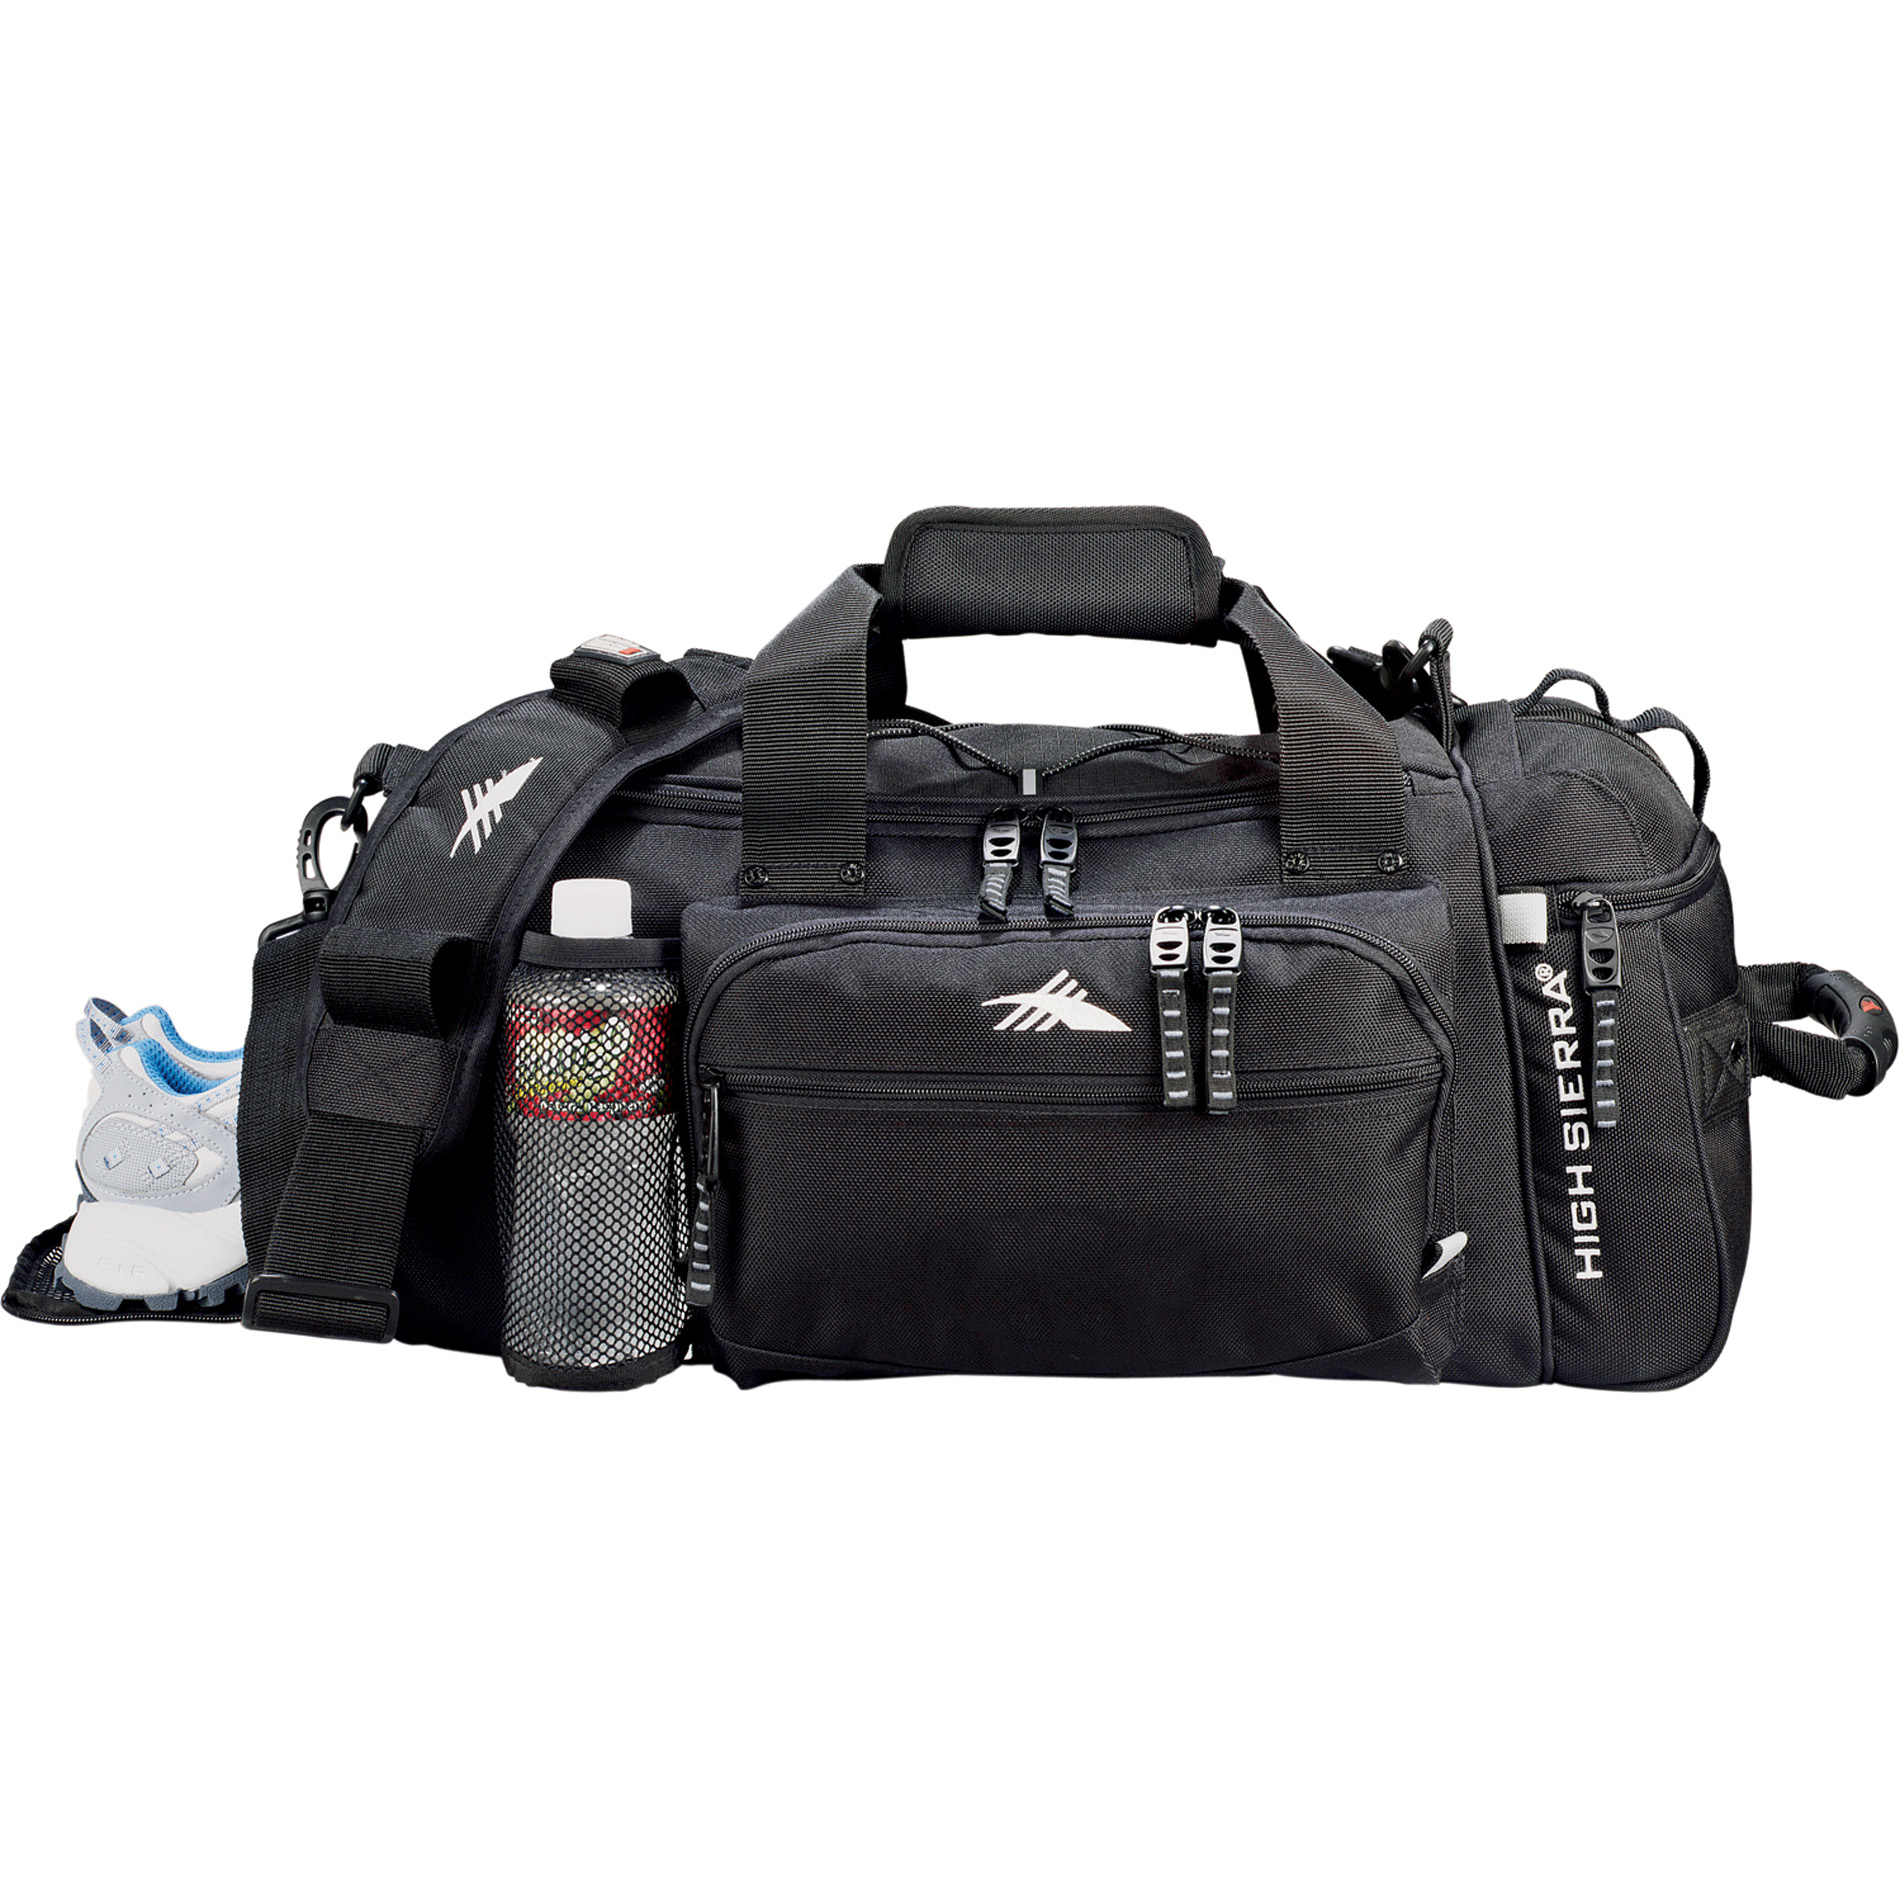 "High Sierra 8050-17 - 21"" Water Sport Duffel Bag"